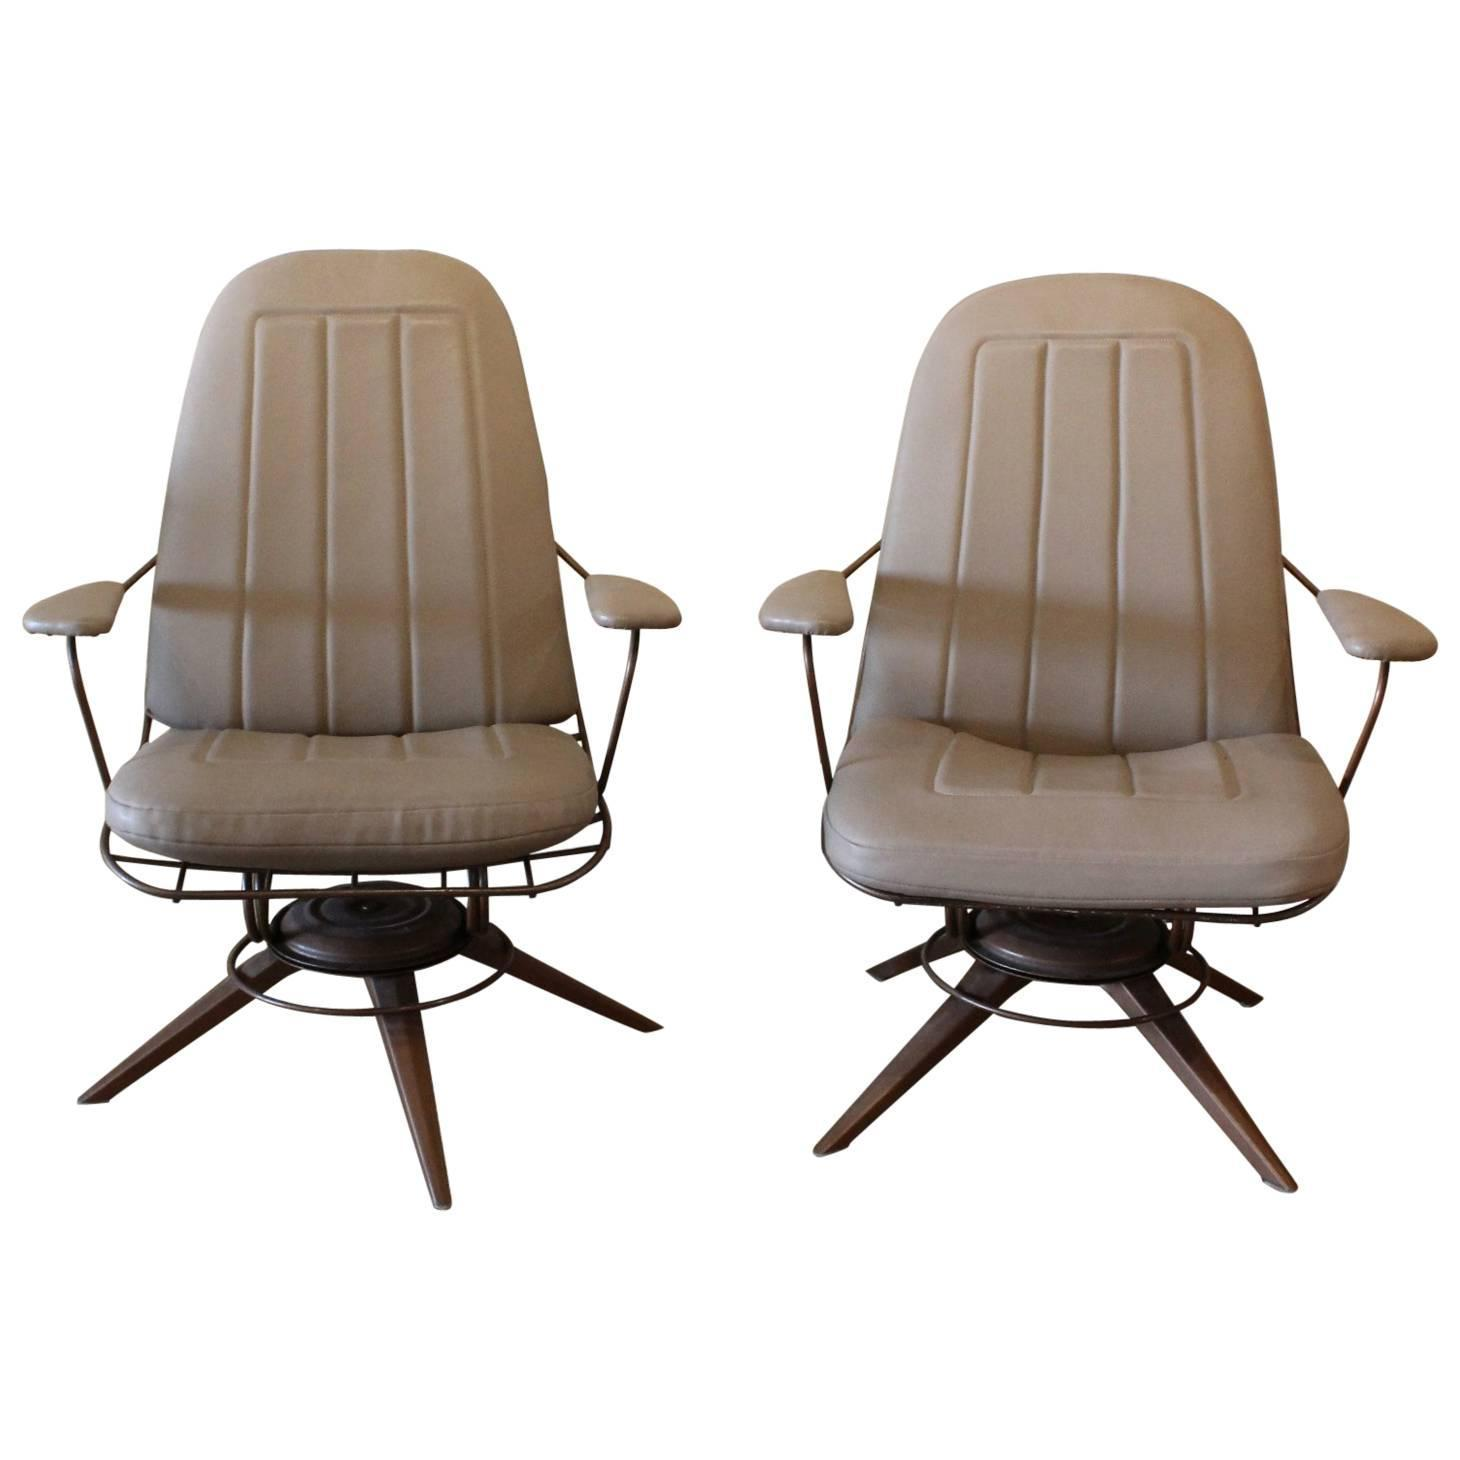 Mid Century Modern Homecrest Wire Deck Chairs For Sale at 1stdibs